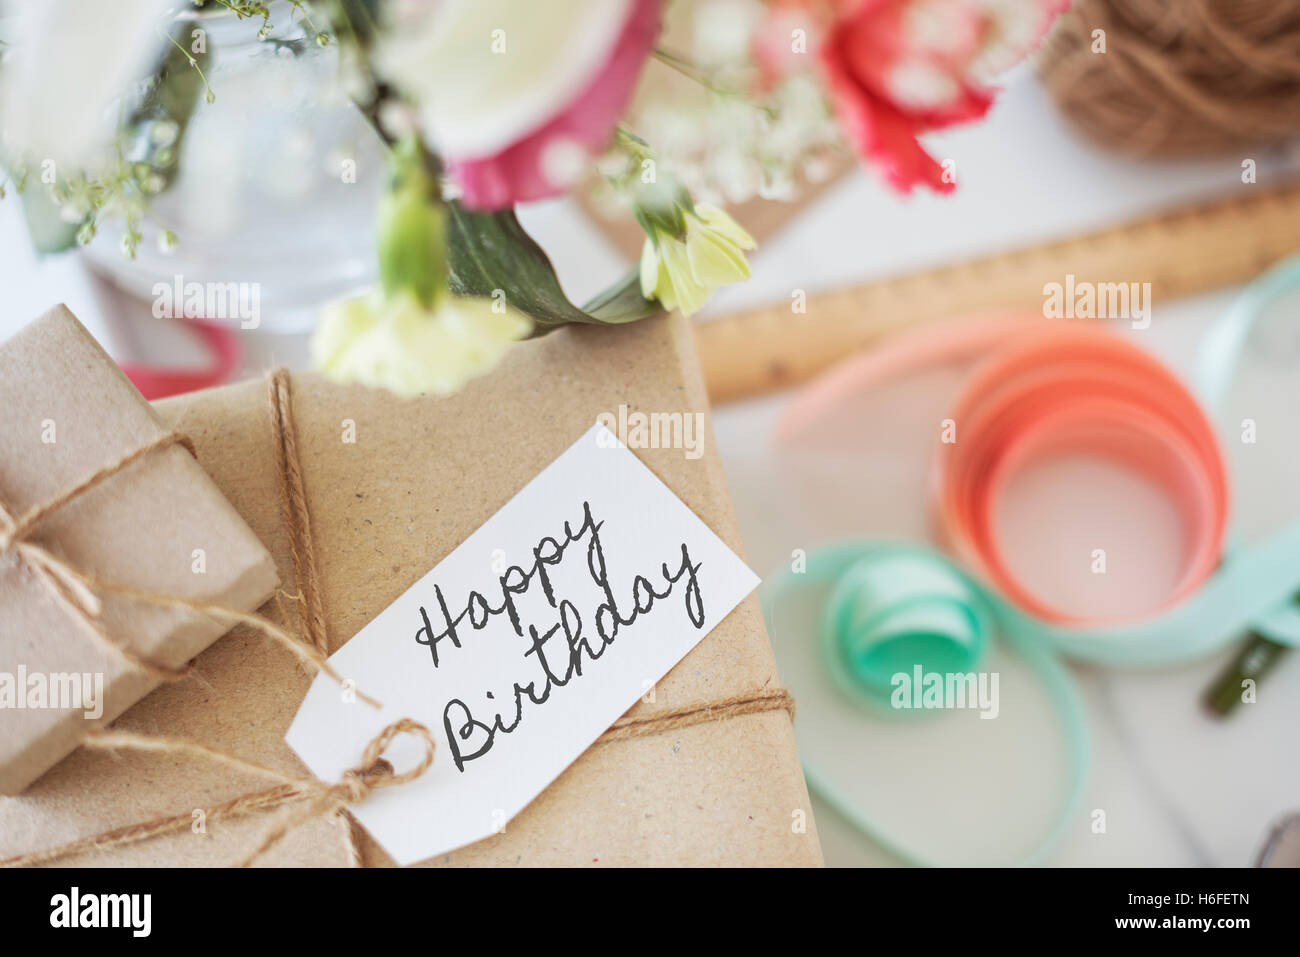 HBD Happy Birthday Celebration Glückwunsch Party Konzept Stockbild